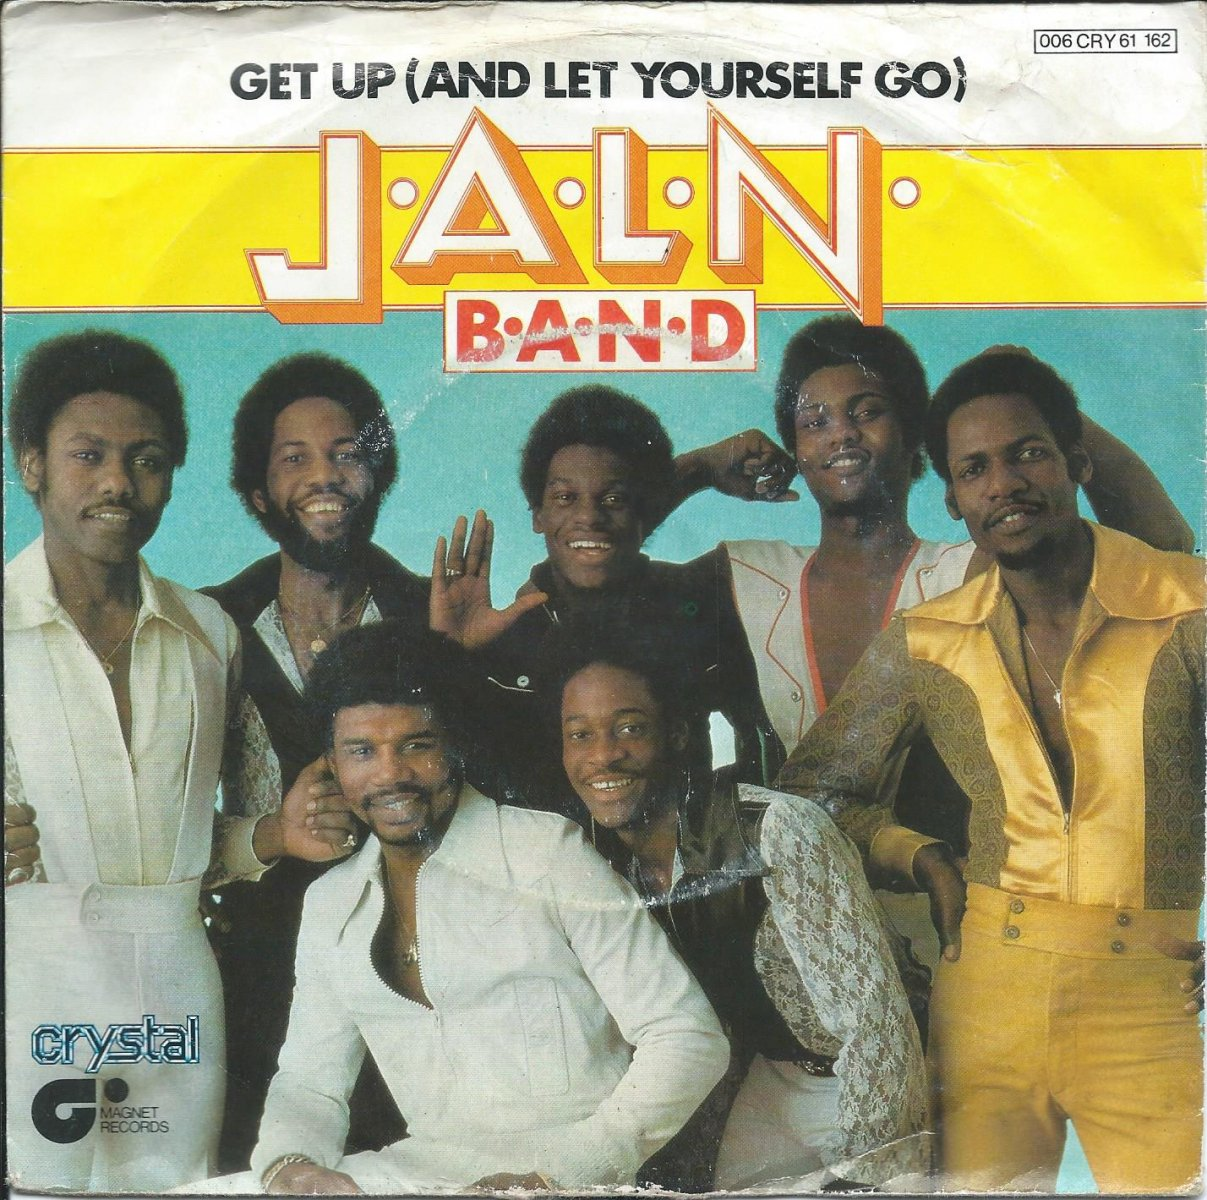 J.A.L.N. BAND ‎/ GET UP (AND LET YOURSELF GO) / GOT THINGS TO DO (7